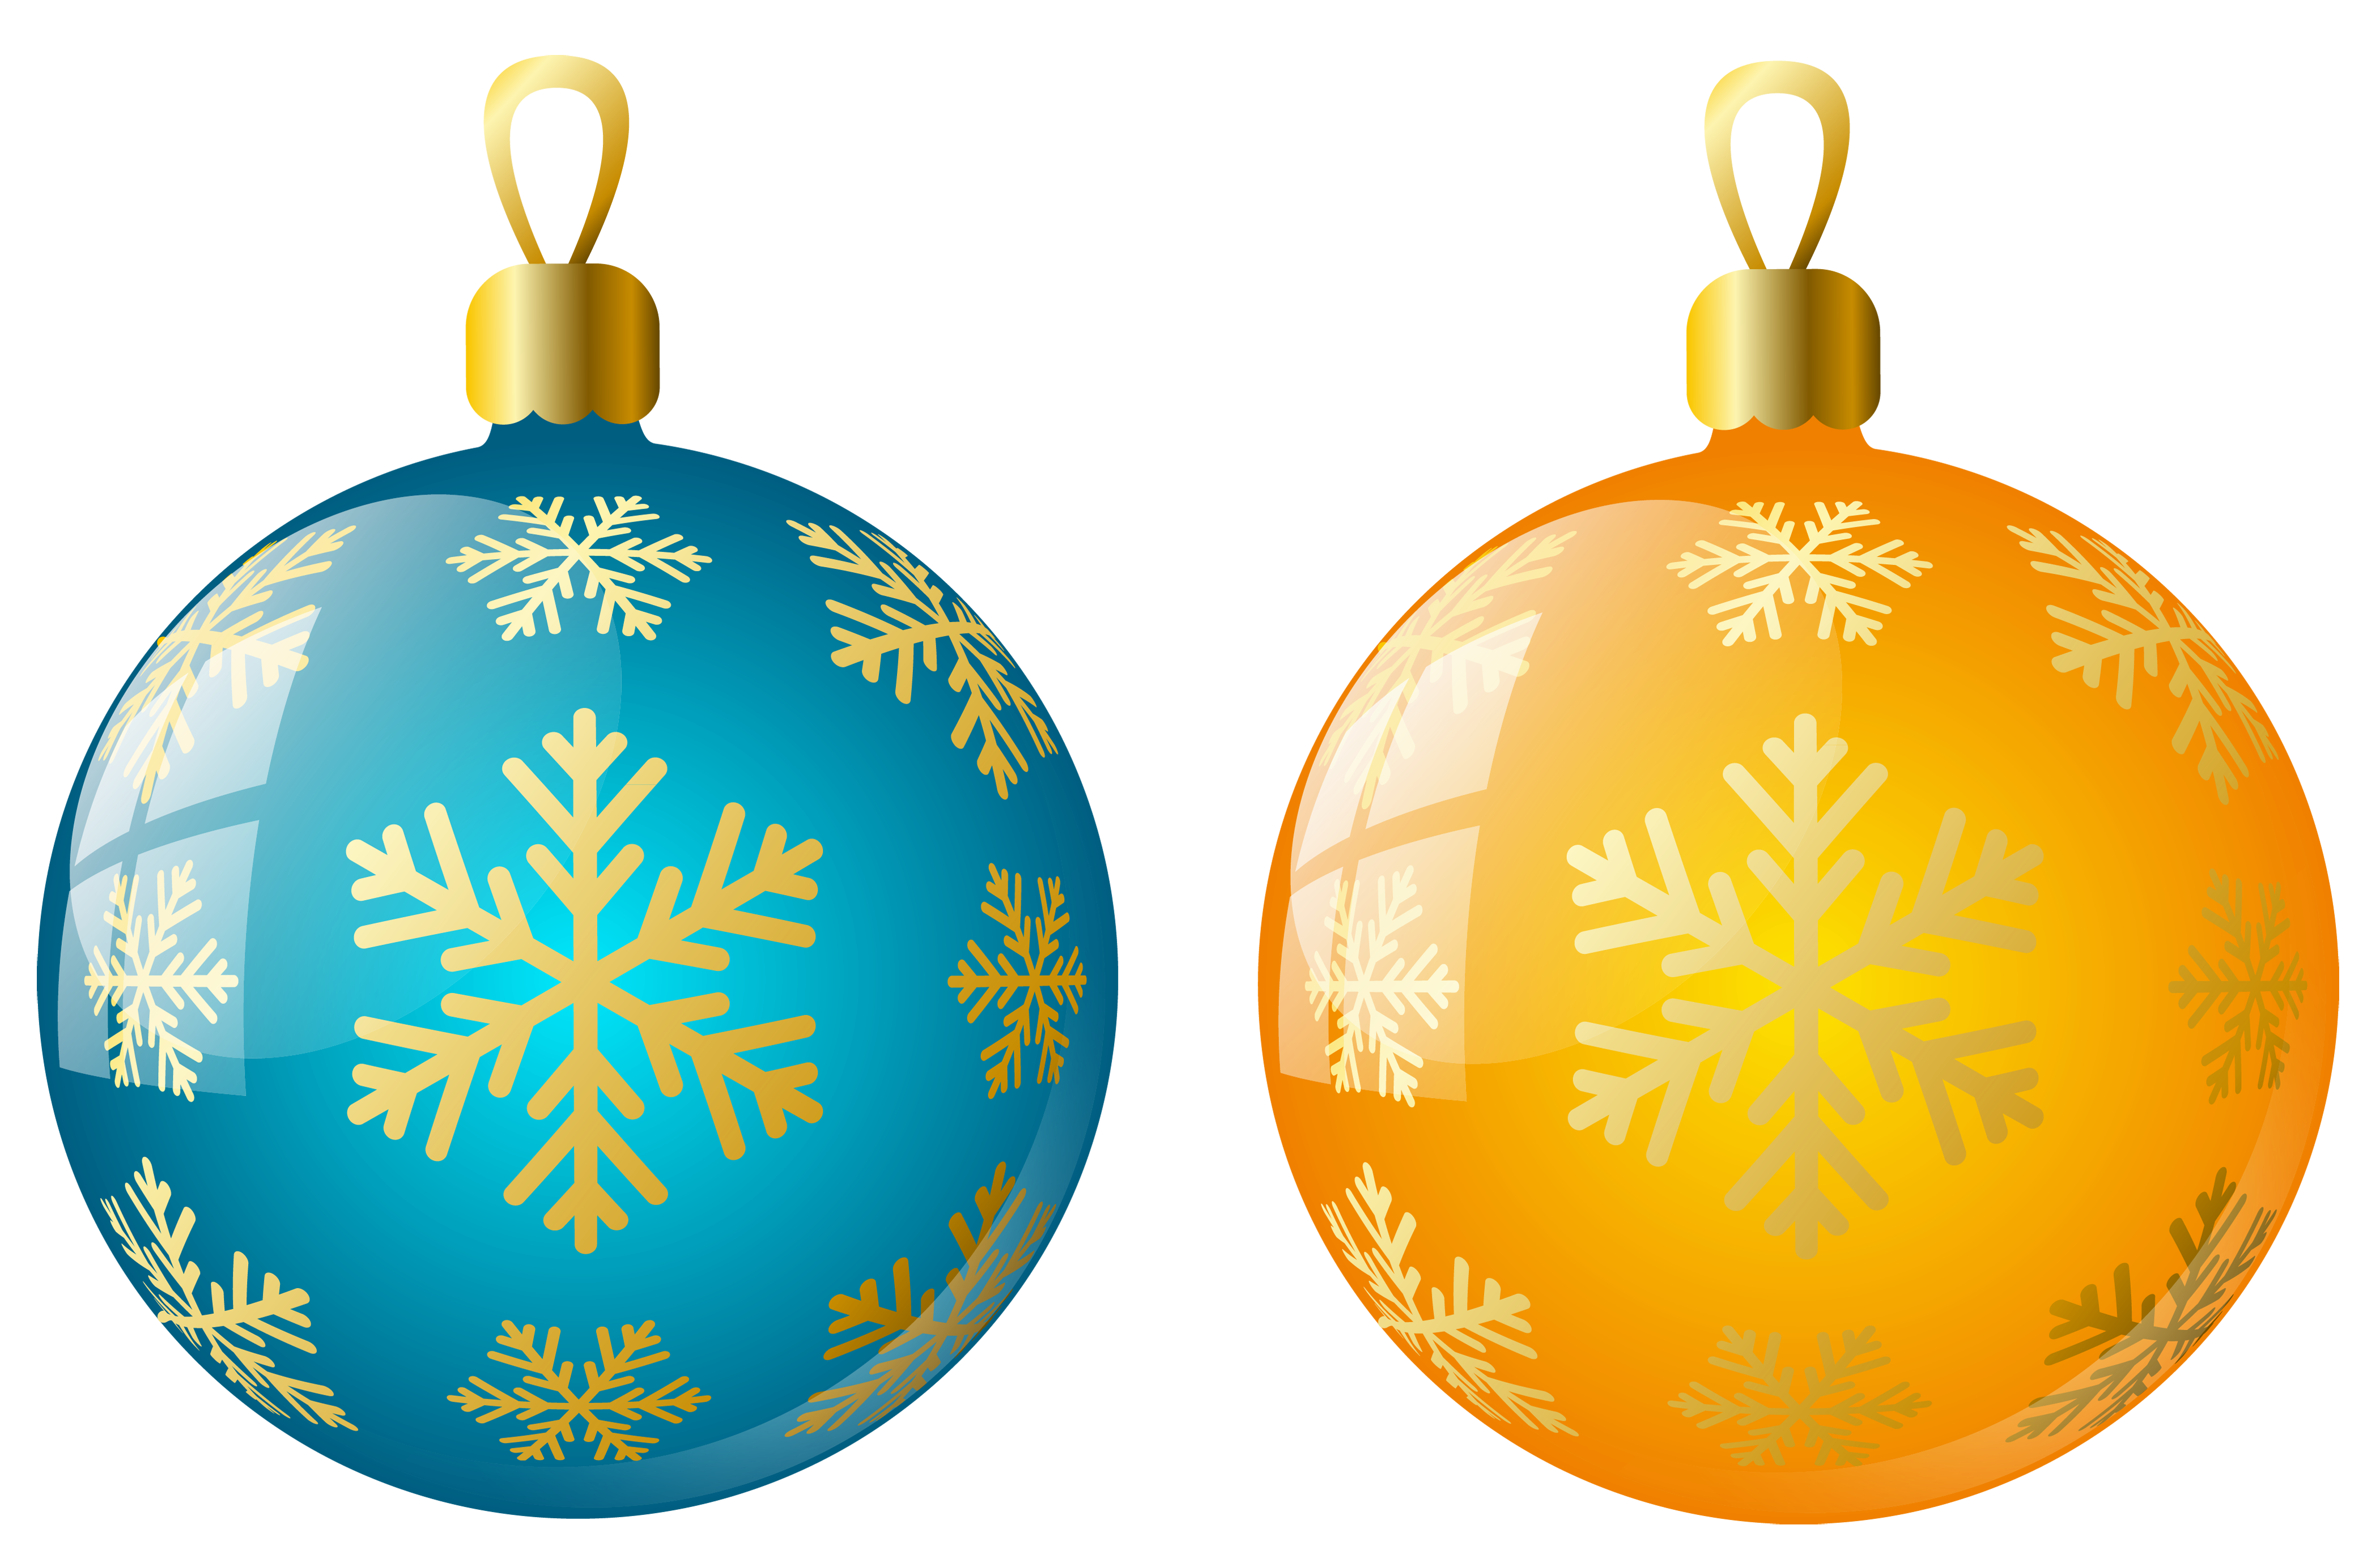 Christmas ball ornament clipart banner freeuse library Large Size Transparent Yellow and Blue Christmas Ball Ornaments ... banner freeuse library